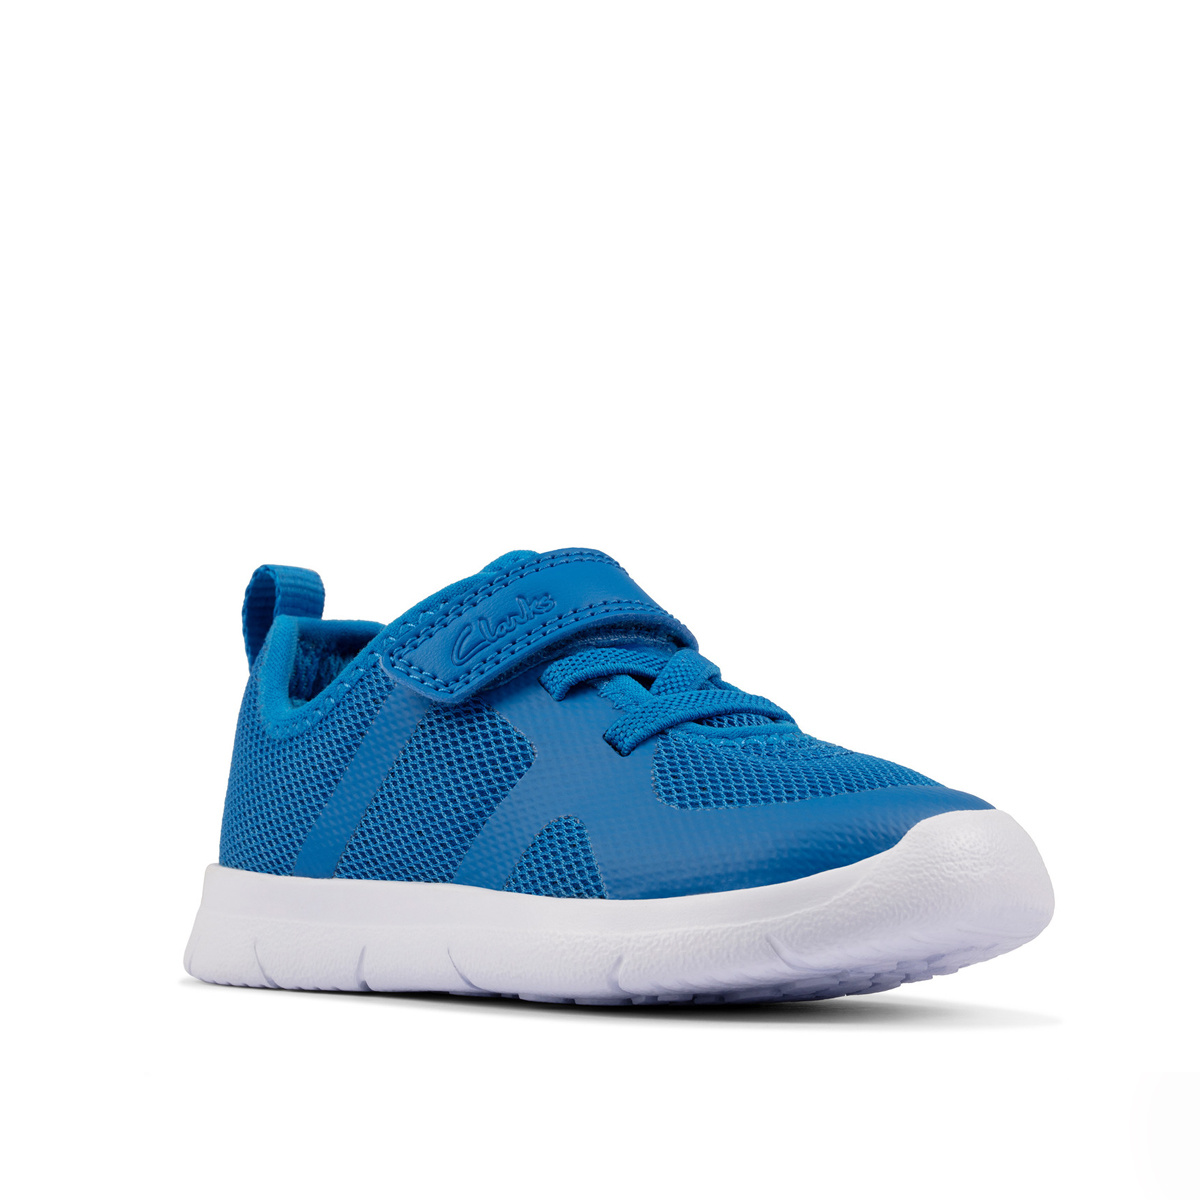 Clarks Ath Flux Blue Synthetic Junior